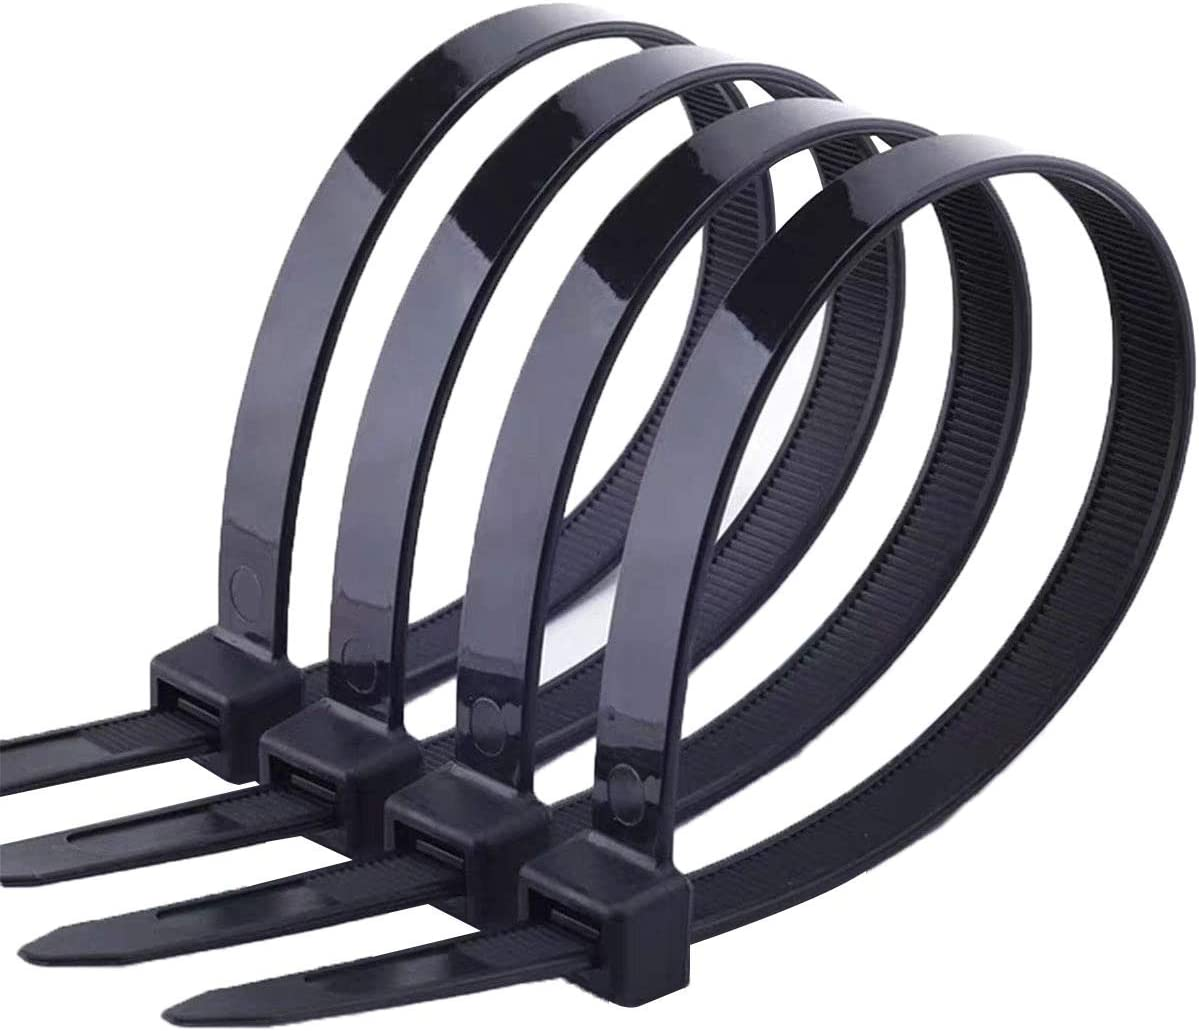 Tensile Strength Wire /& Cord Management // Industrial // Household Use 17 Inch. 50 Pk 175 Lbs Nylon Zip Tie SecuriTie CT17-17550 Extra Heavy-Duty Cable Ties Natural Actuant